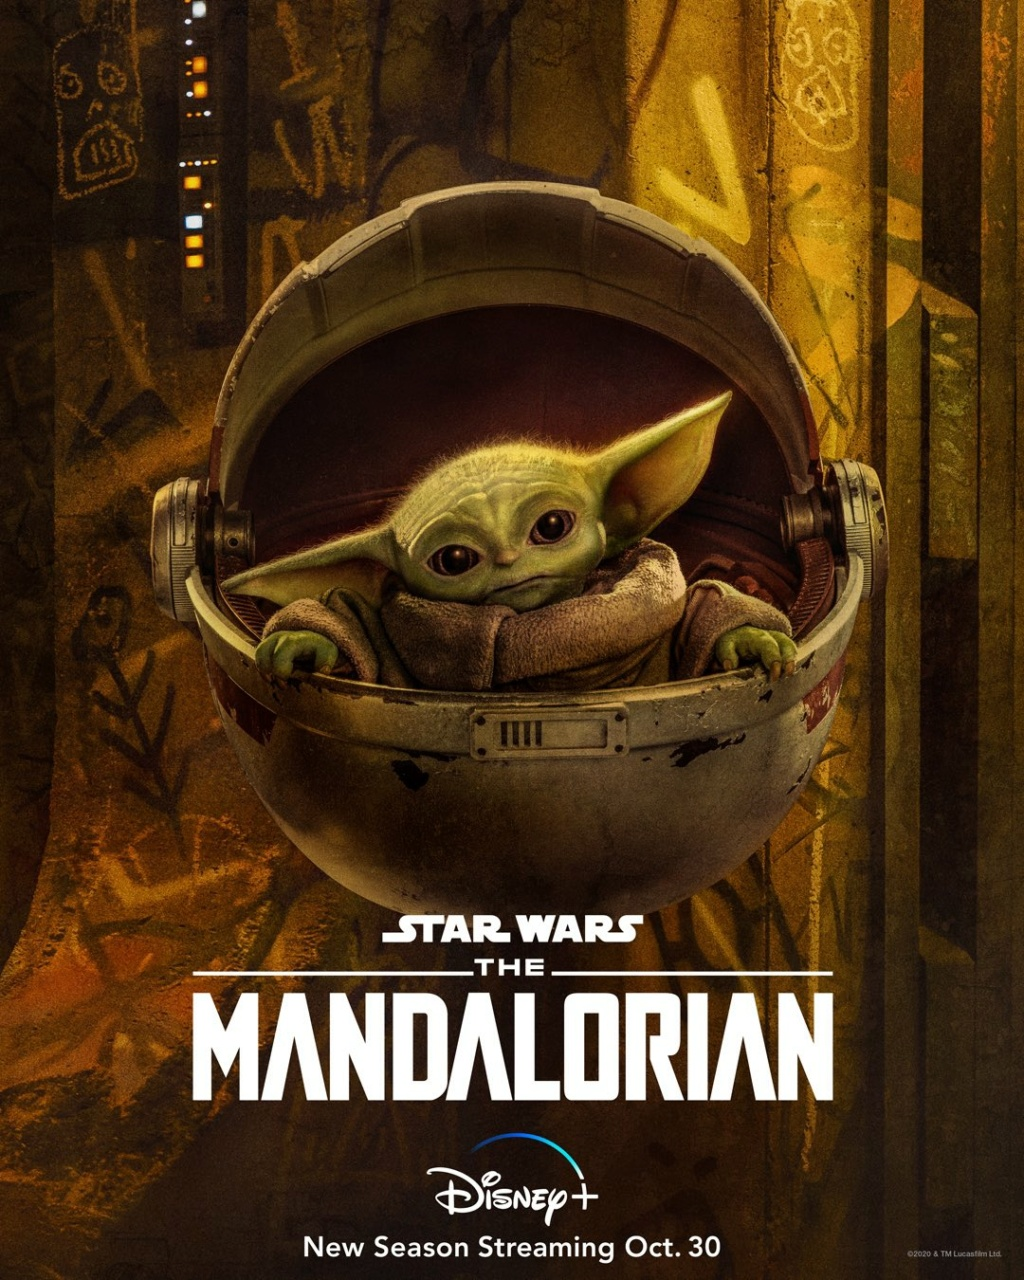 Les NEWS de la saison 2 de Star Wars The Mandalorian  - Page 2 Img_2068